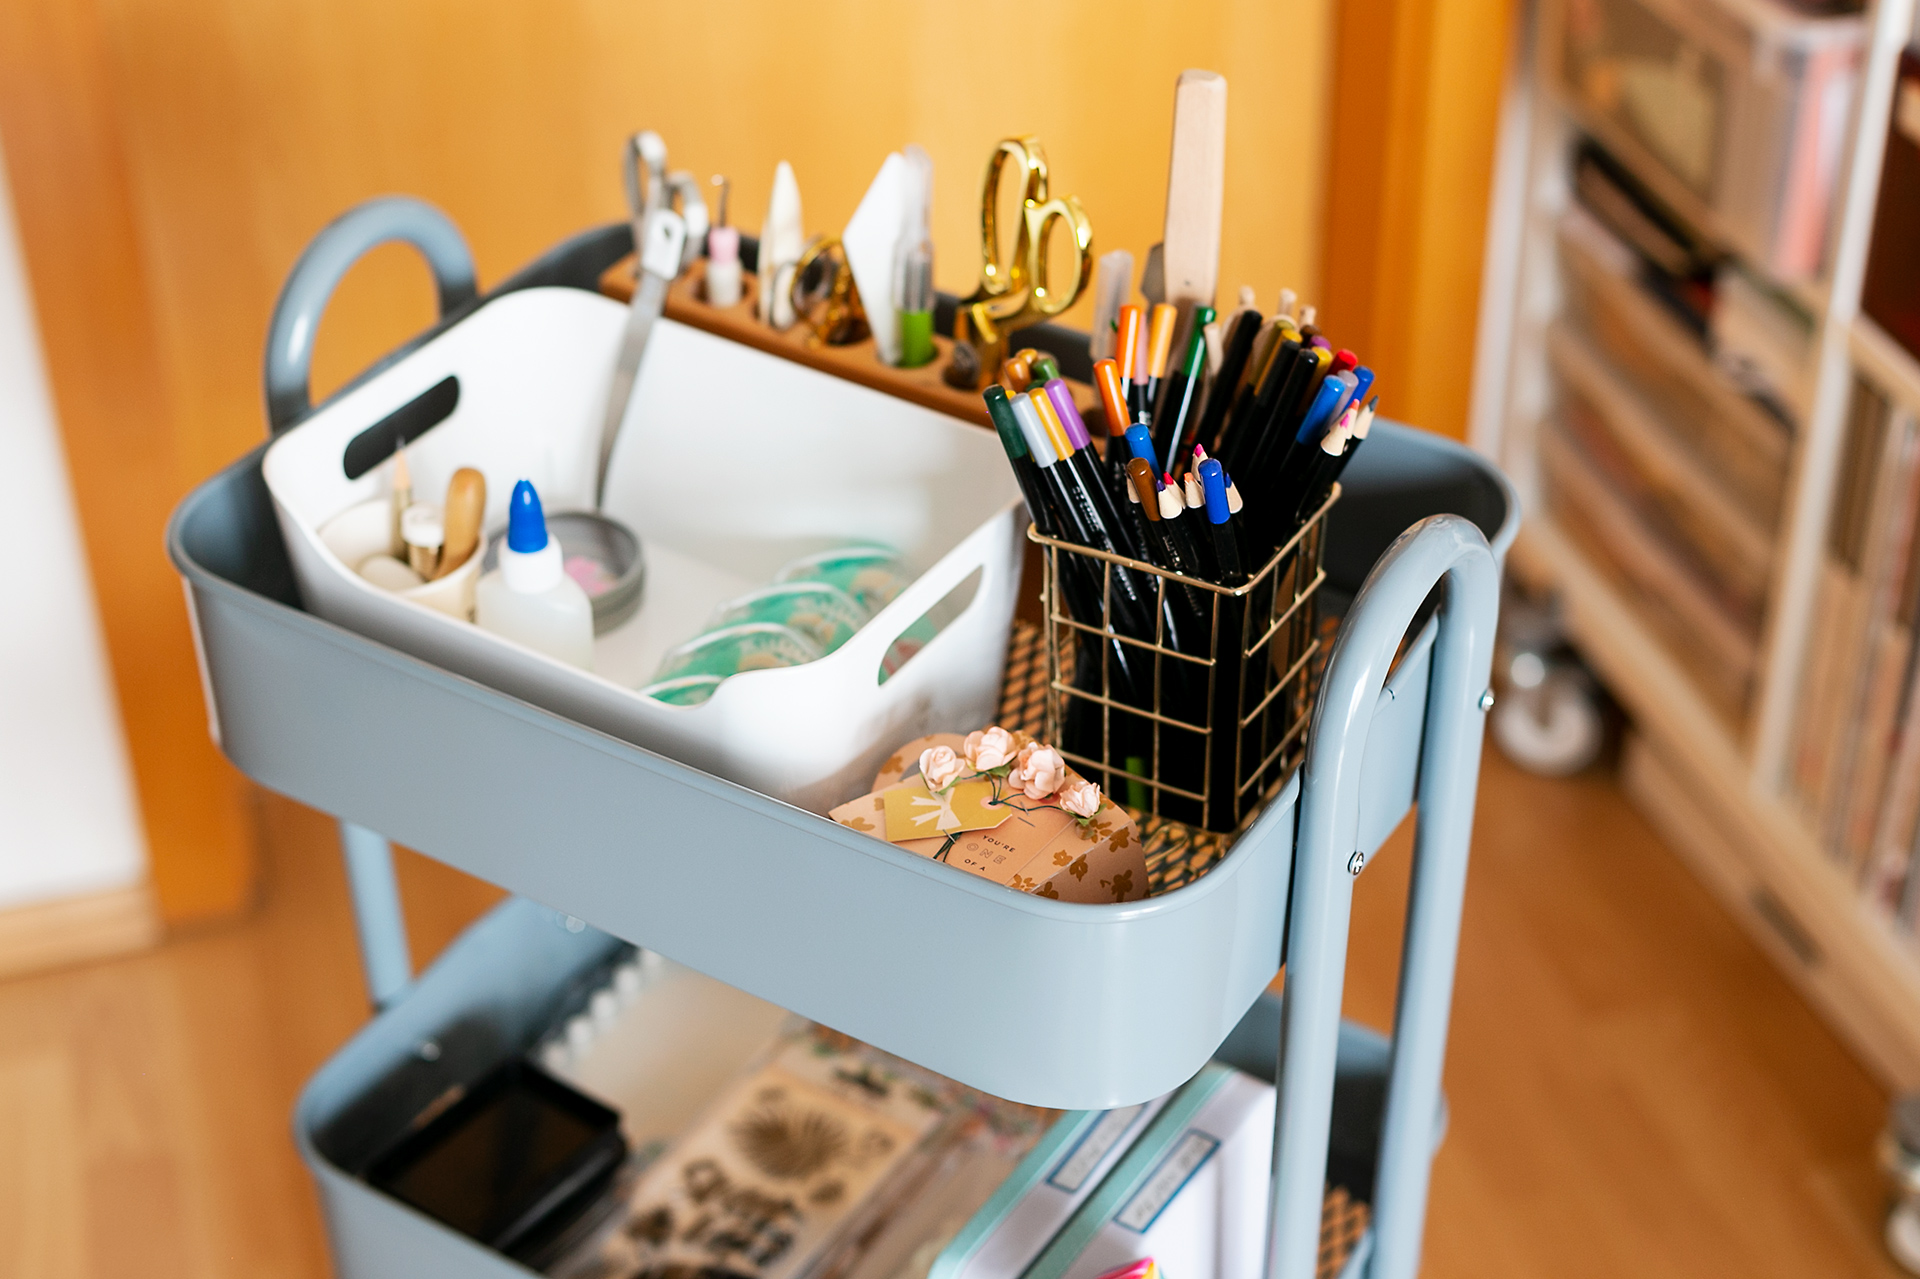 Styled storage cart from we r memory keepers